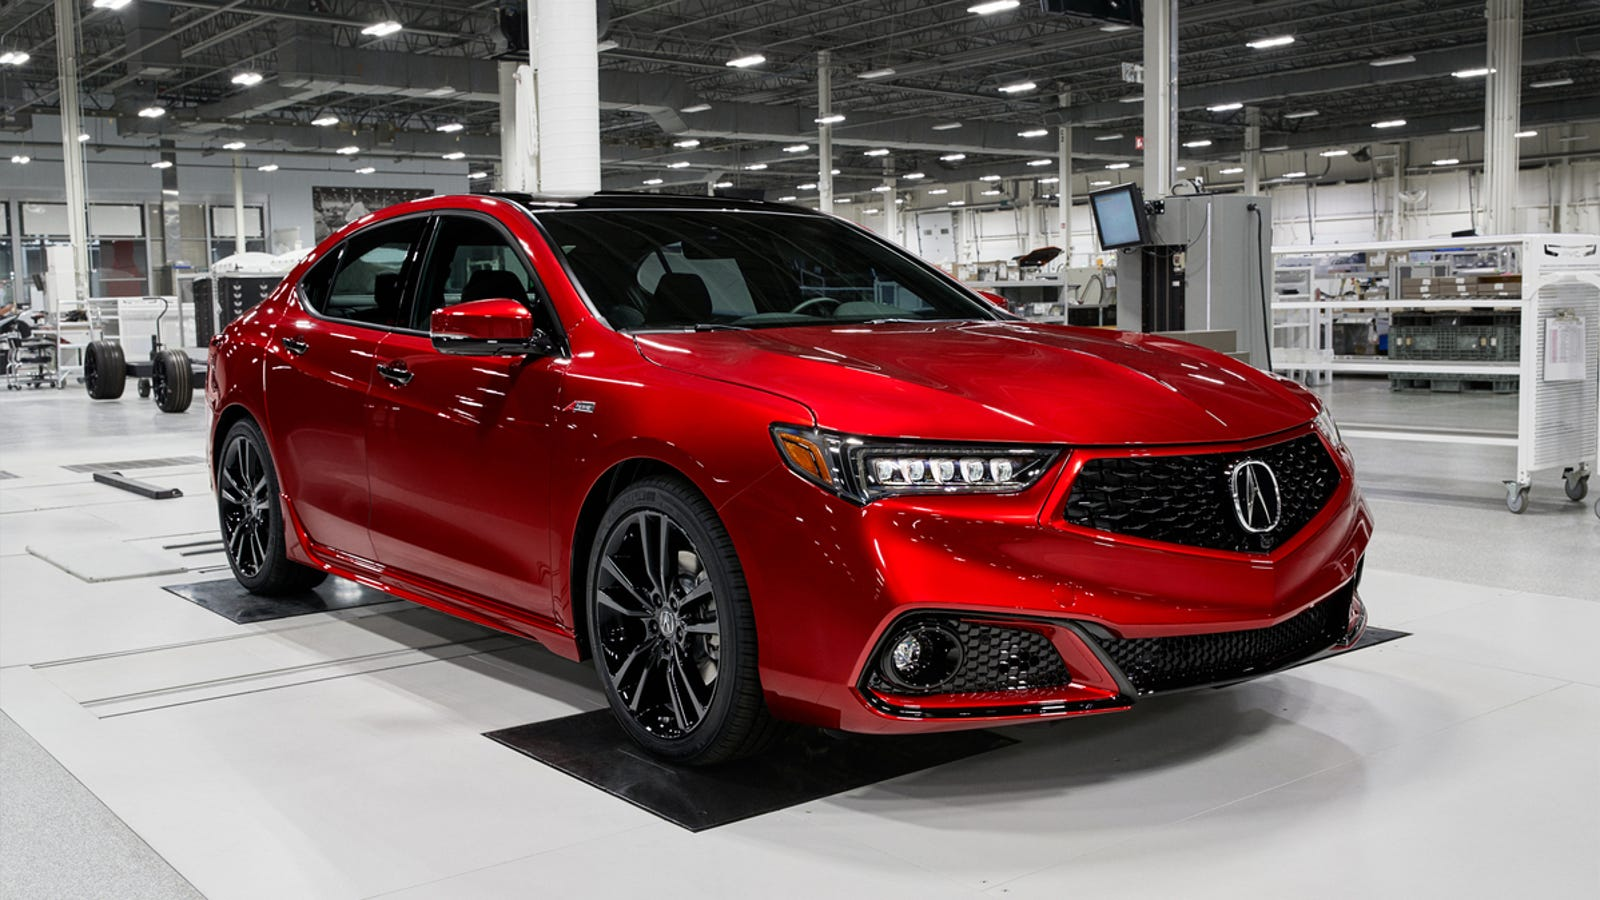 Illustration for article titled Acura Is Softly Expanding Its Skunkworks to Make Cooler Cars